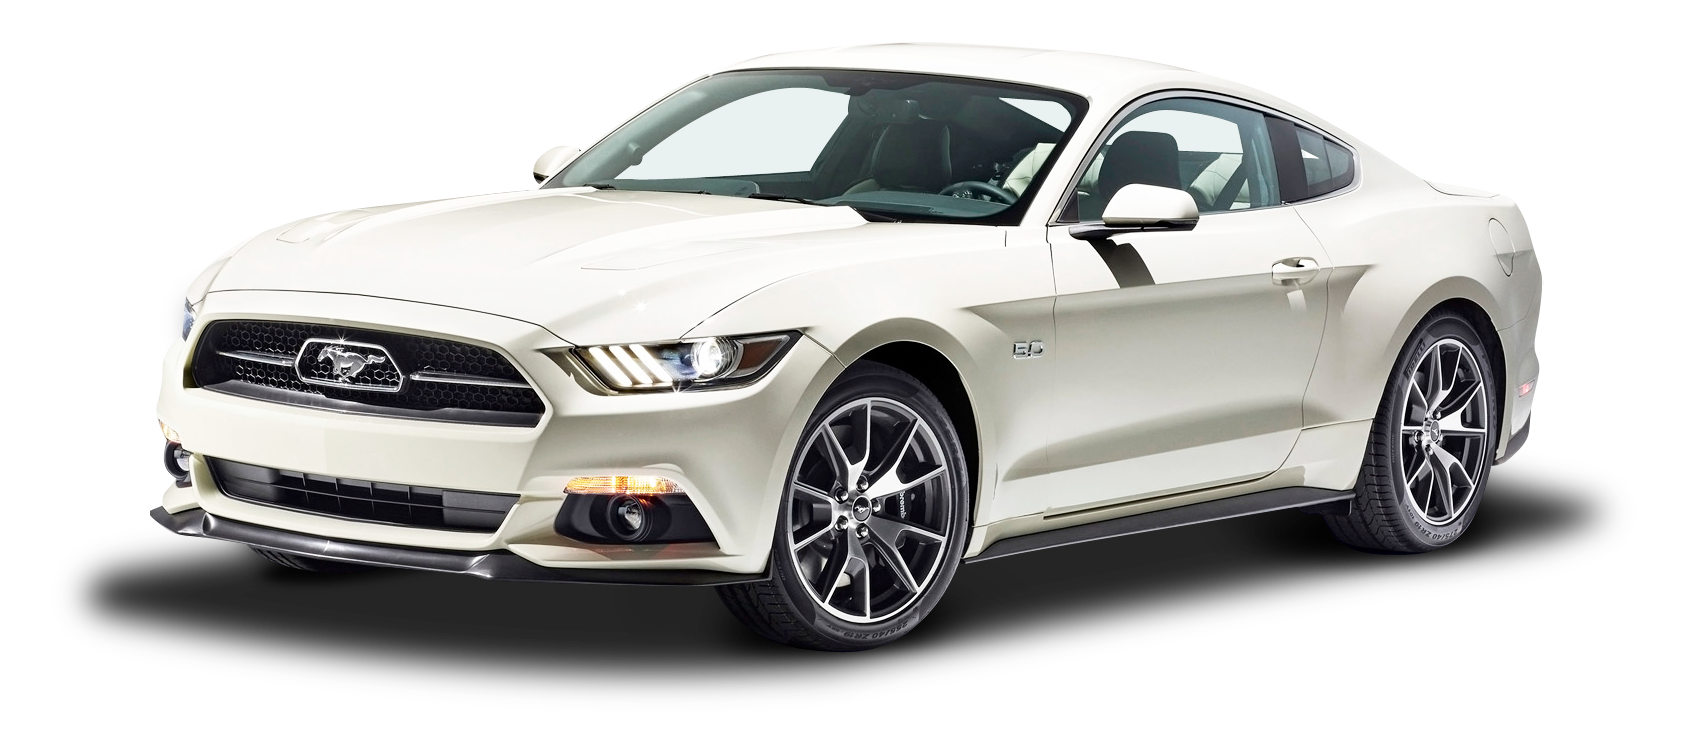 Muscle mustangs png. Ford mustang images free